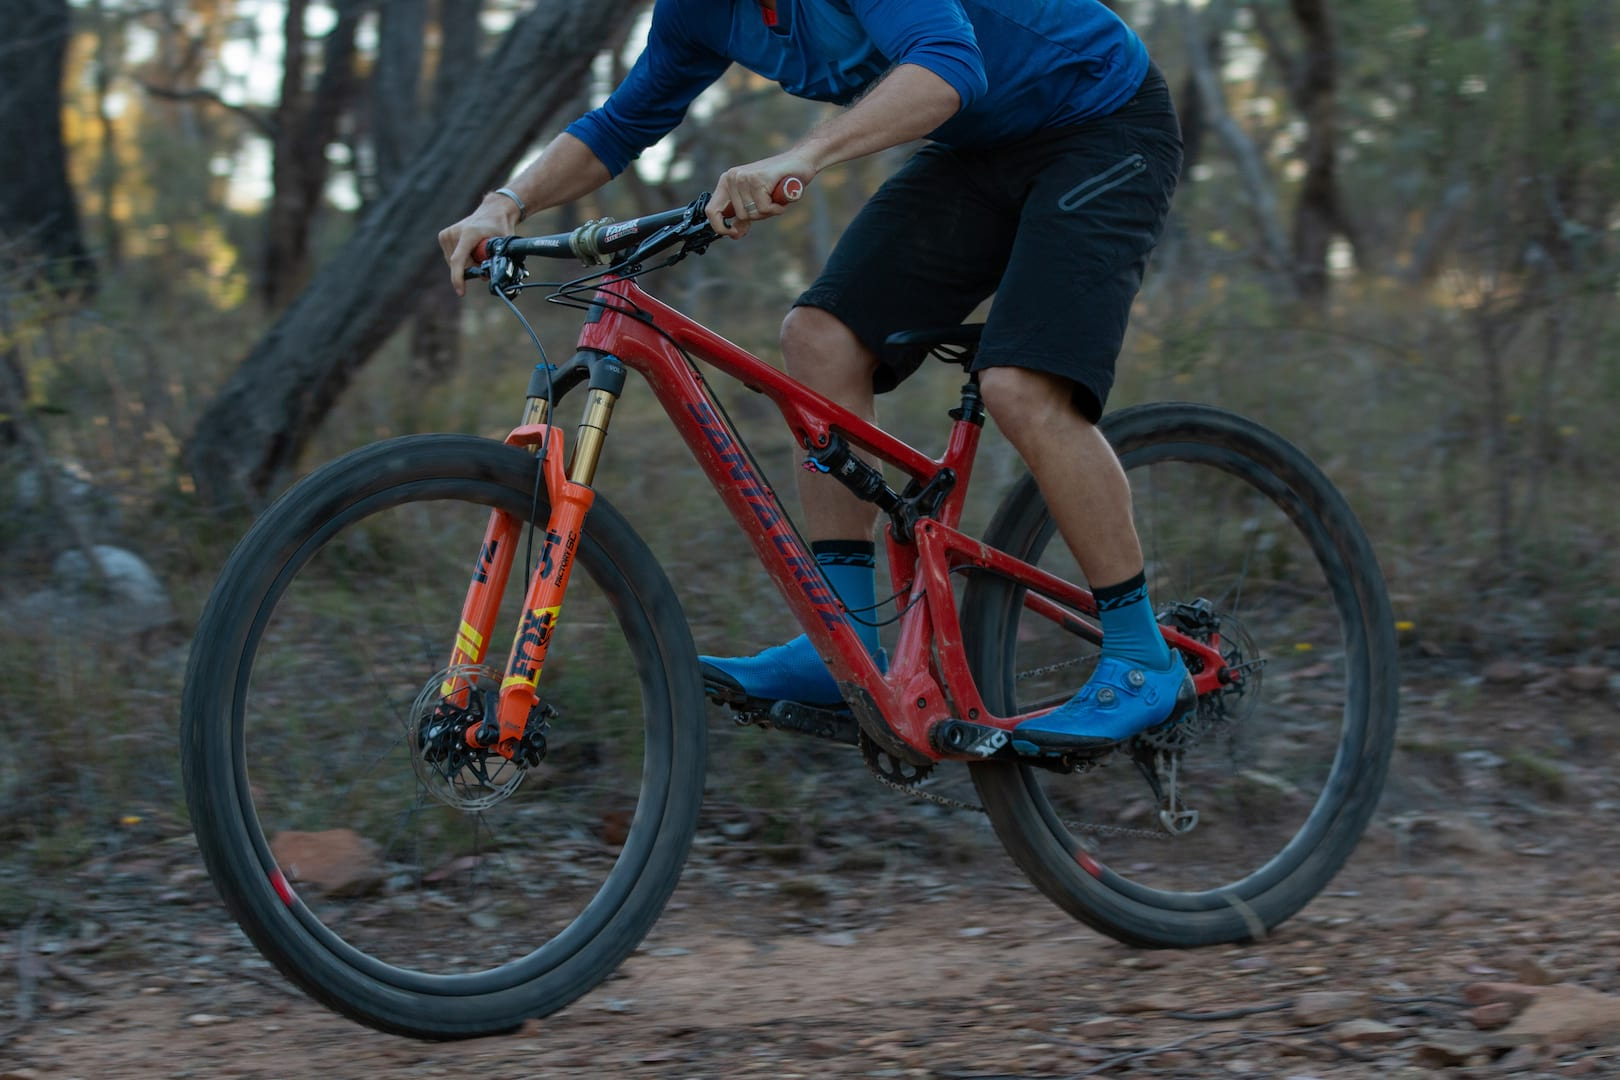 Review With A 120mm Fork The Santa Cruz Blur Is A Pocket